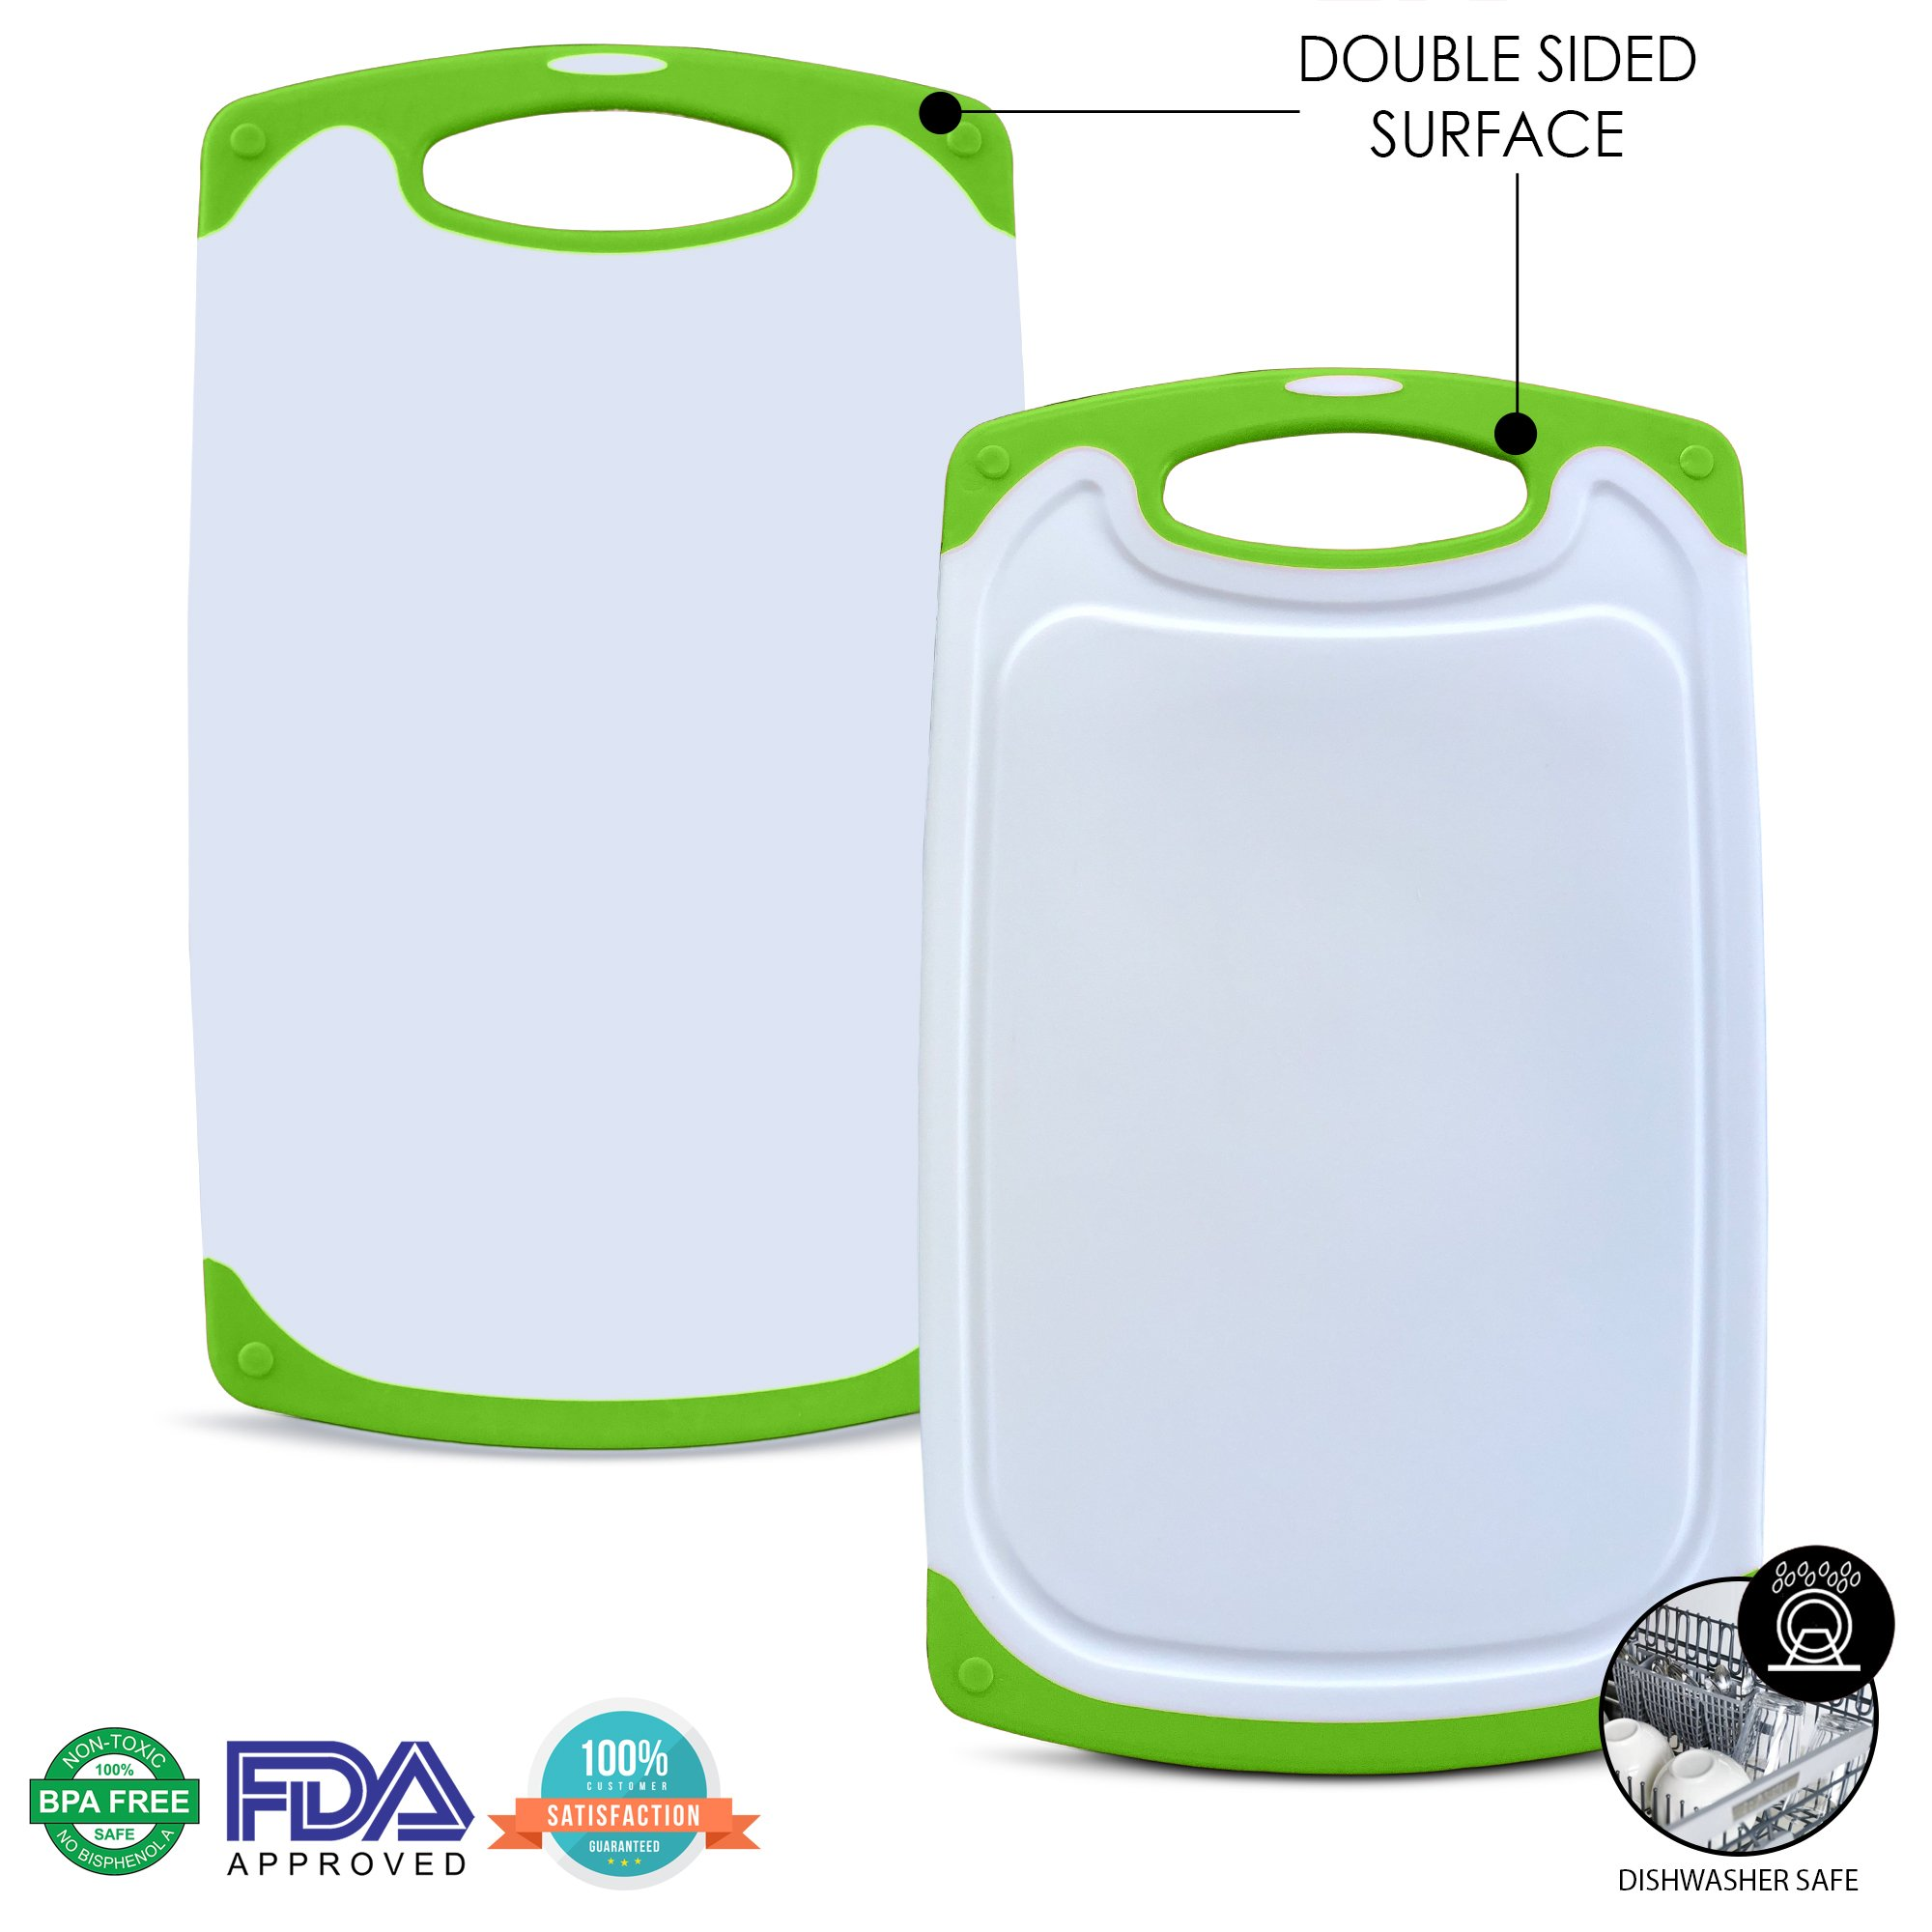 Raj Non-Slip Antibacterial Plastic Cutting Board, Deep Juice Groove, Dishwasher Safe, BPA Free, FDA Approved White and green (3 Pieces, White board with Green Ends)